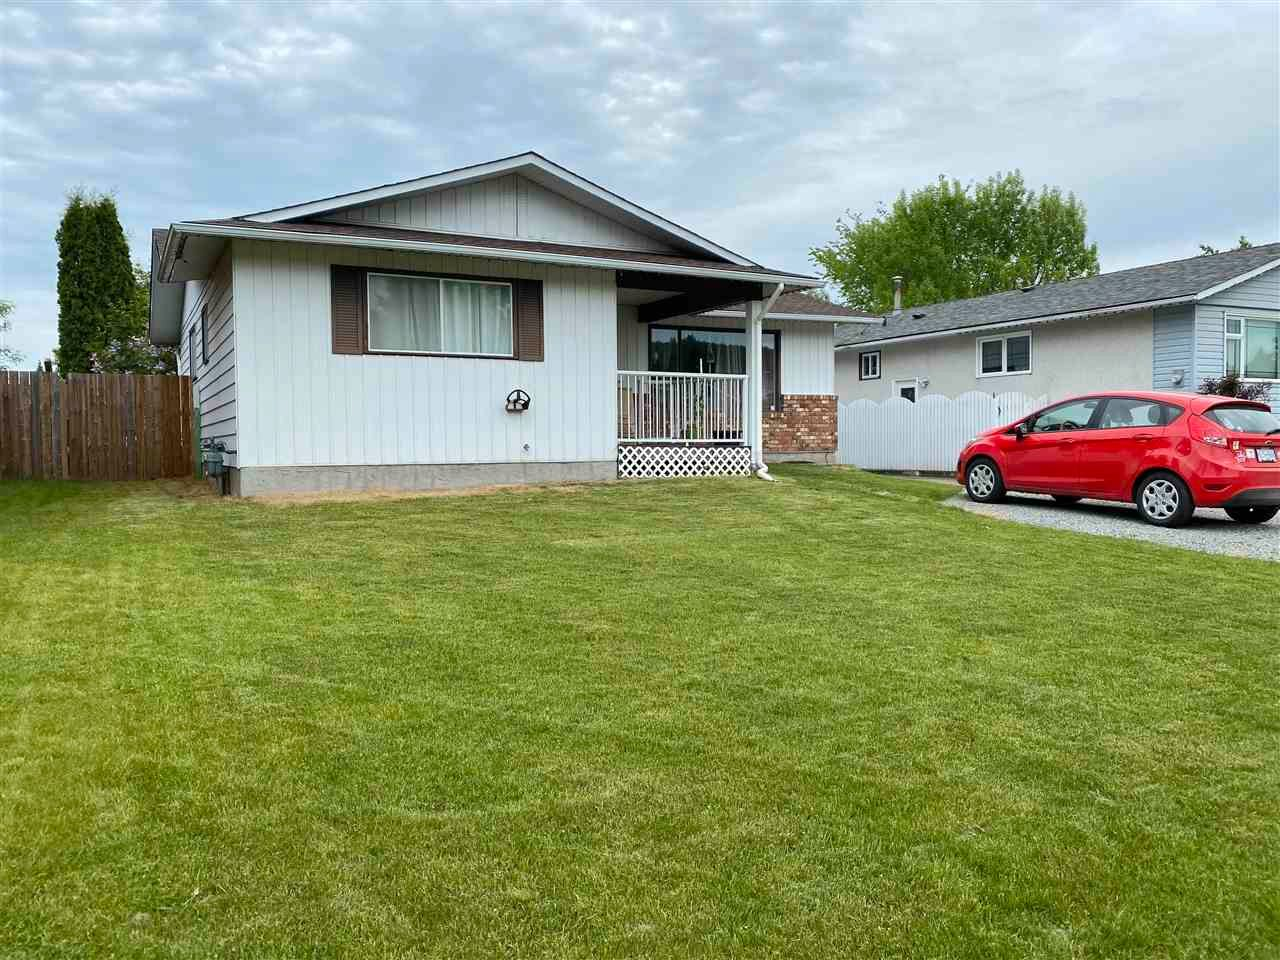 Main Photo: 2420 FOOT Street in Prince George: Pinewood House for sale (PG City West (Zone 71))  : MLS®# R2588309